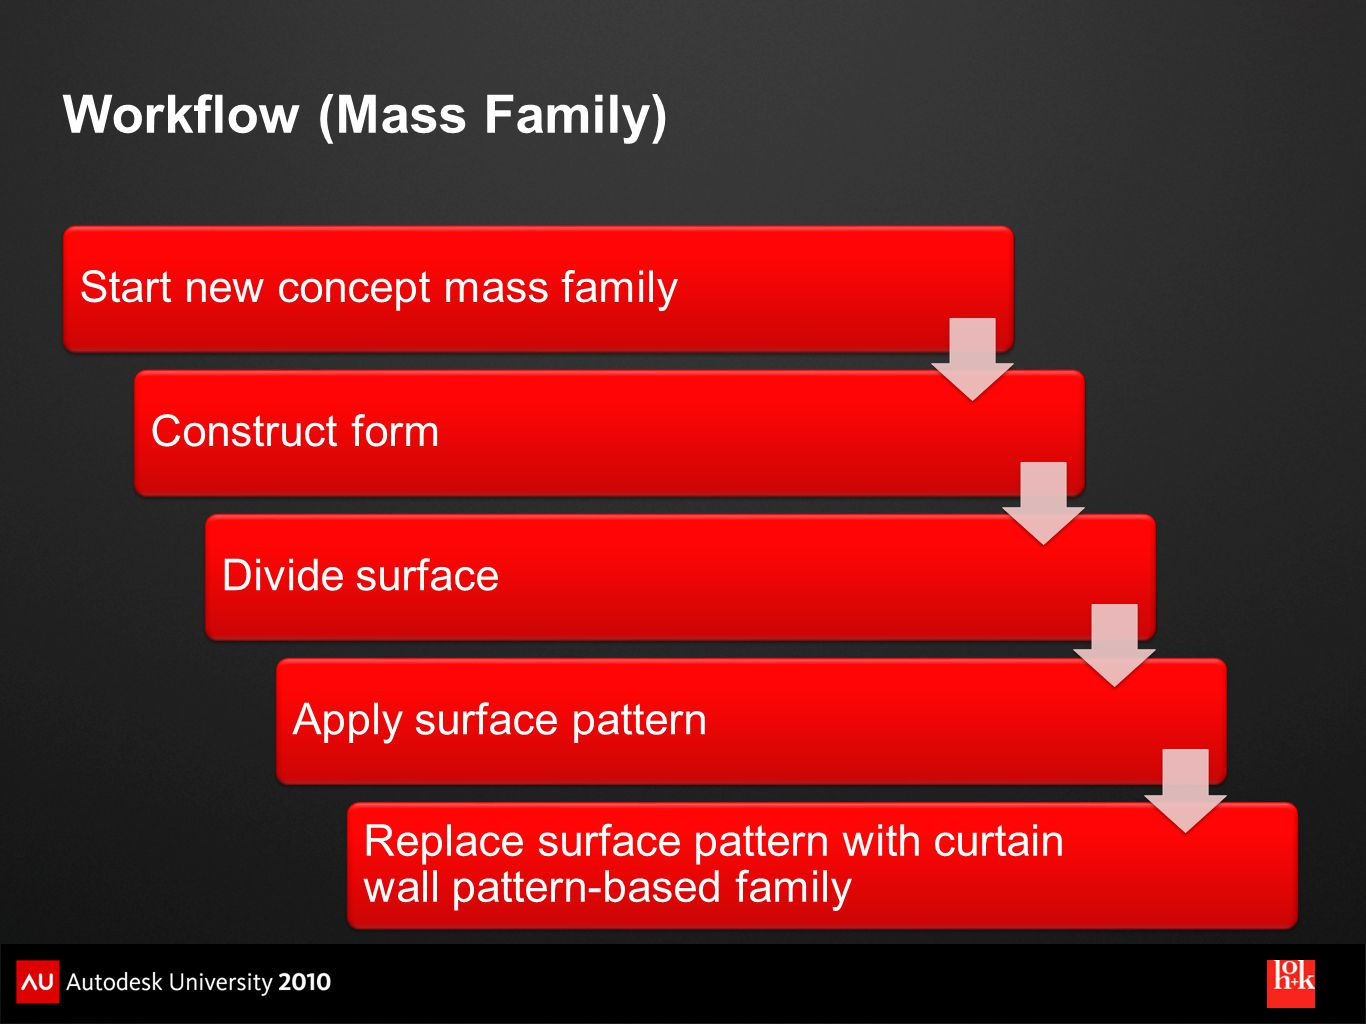 Workflow (Mass Family) Start new concept mass familyConstruct formDivide surfaceApply surface pattern Replace surface pattern with curtain wall pattern-based family